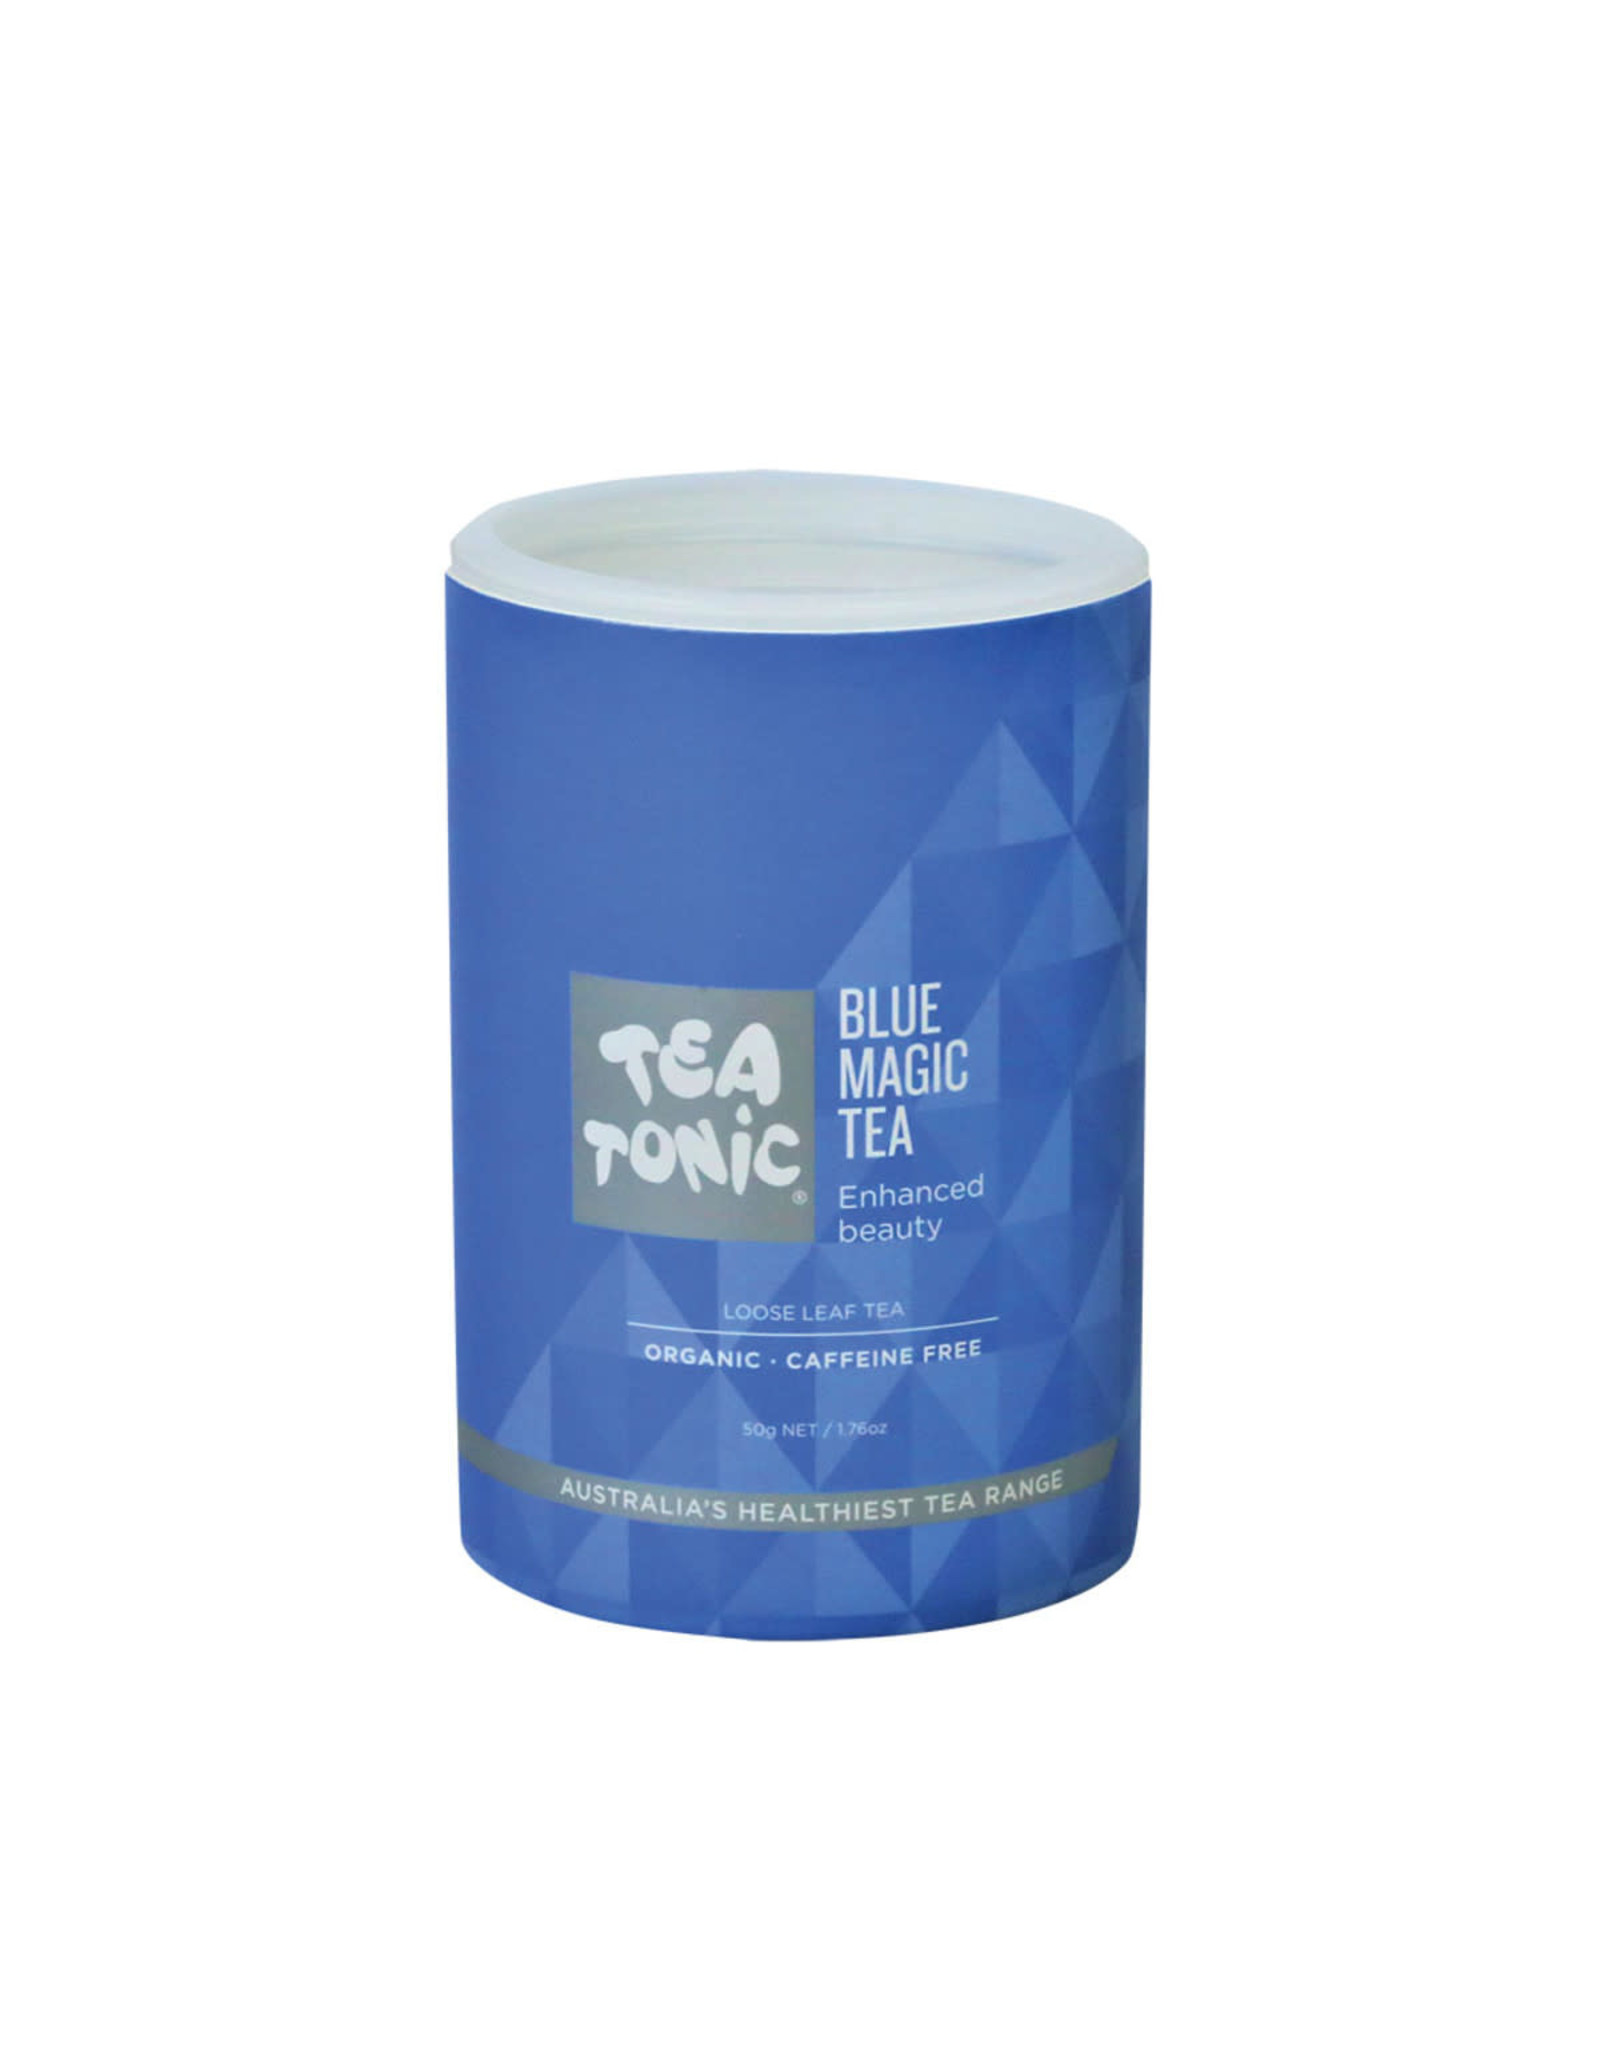 Tea Tonic Blue Magic Tea Tube 50g